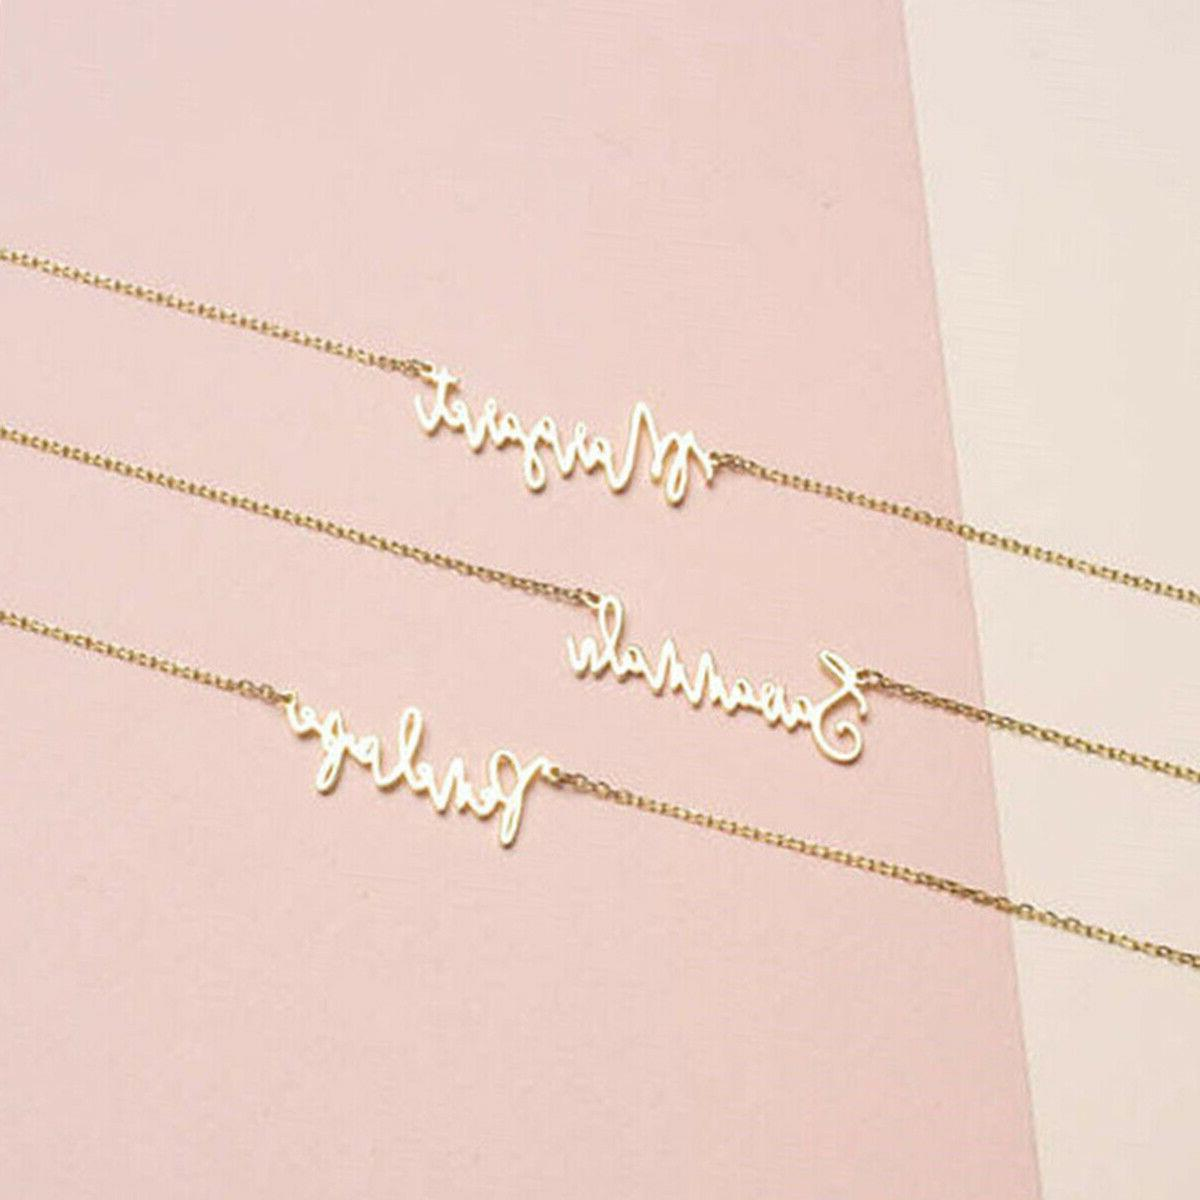 Personalized Necklace Steel Chain Valentine's Gift